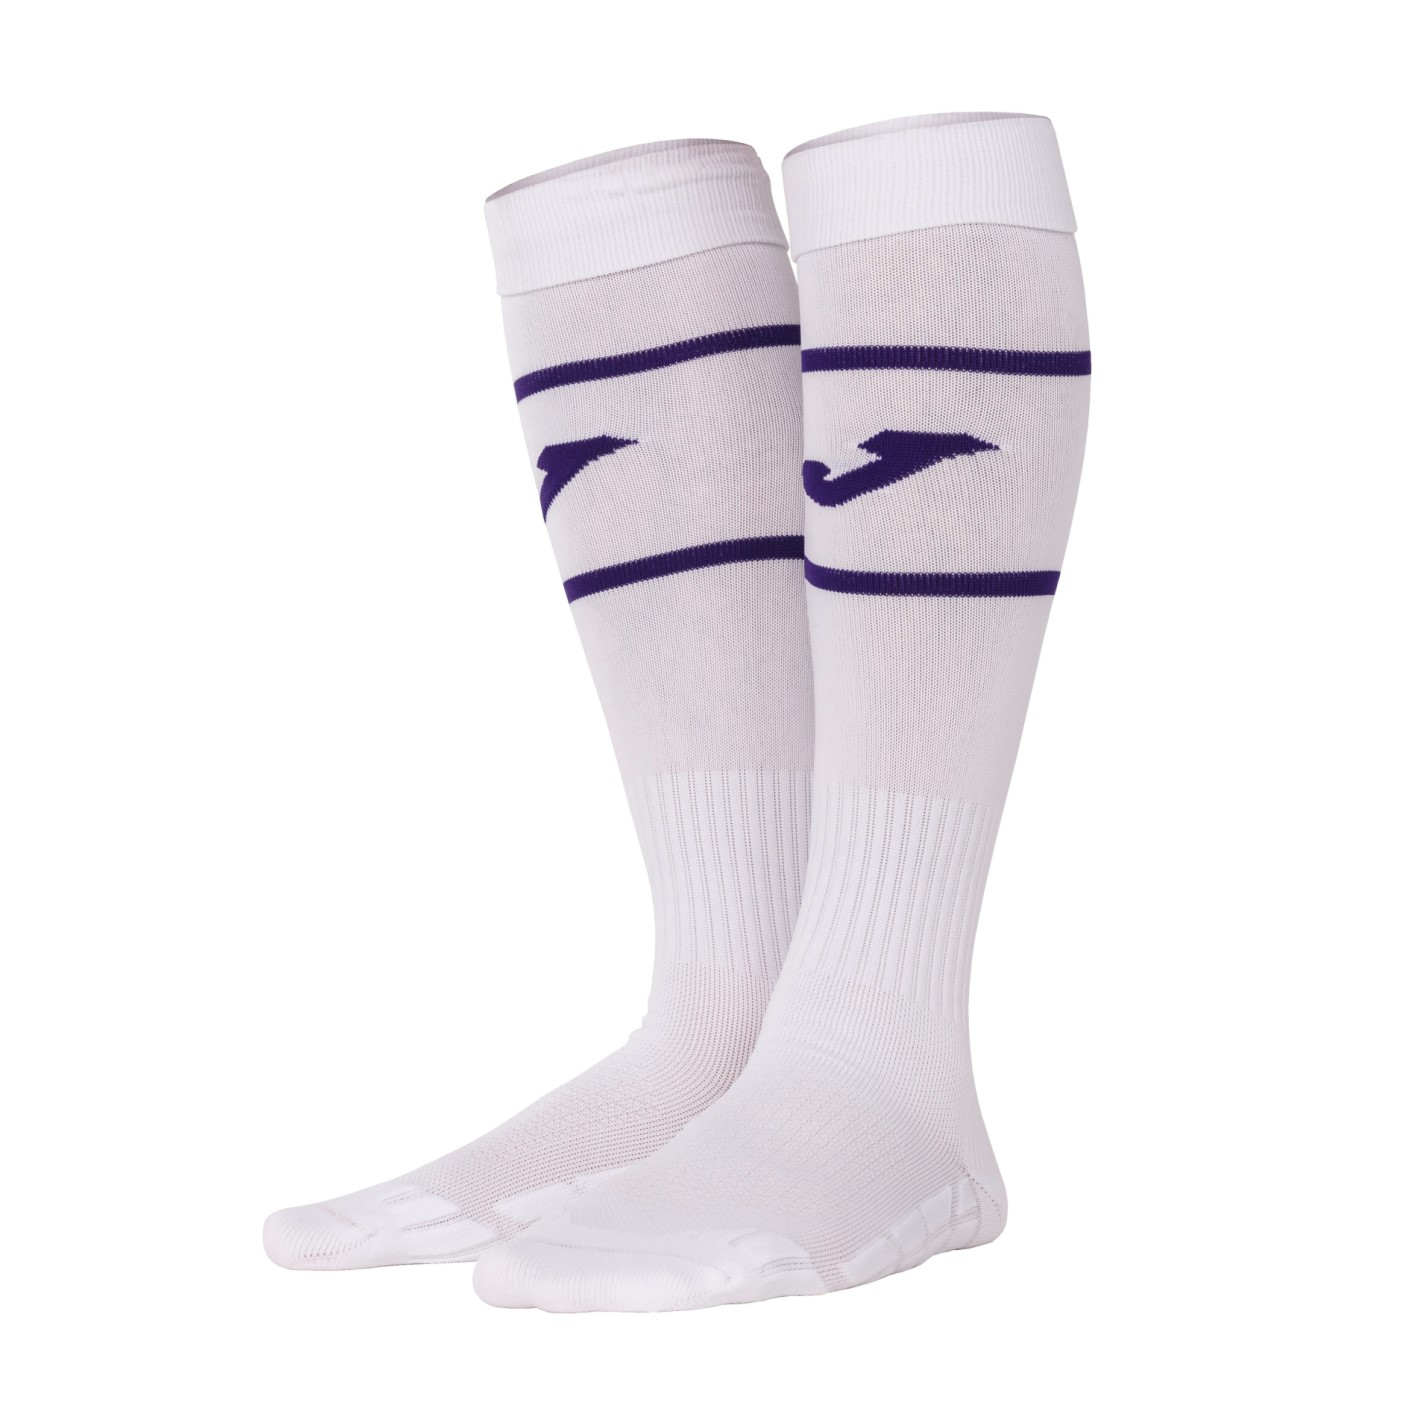 RSCA Away Socks 2020/2021